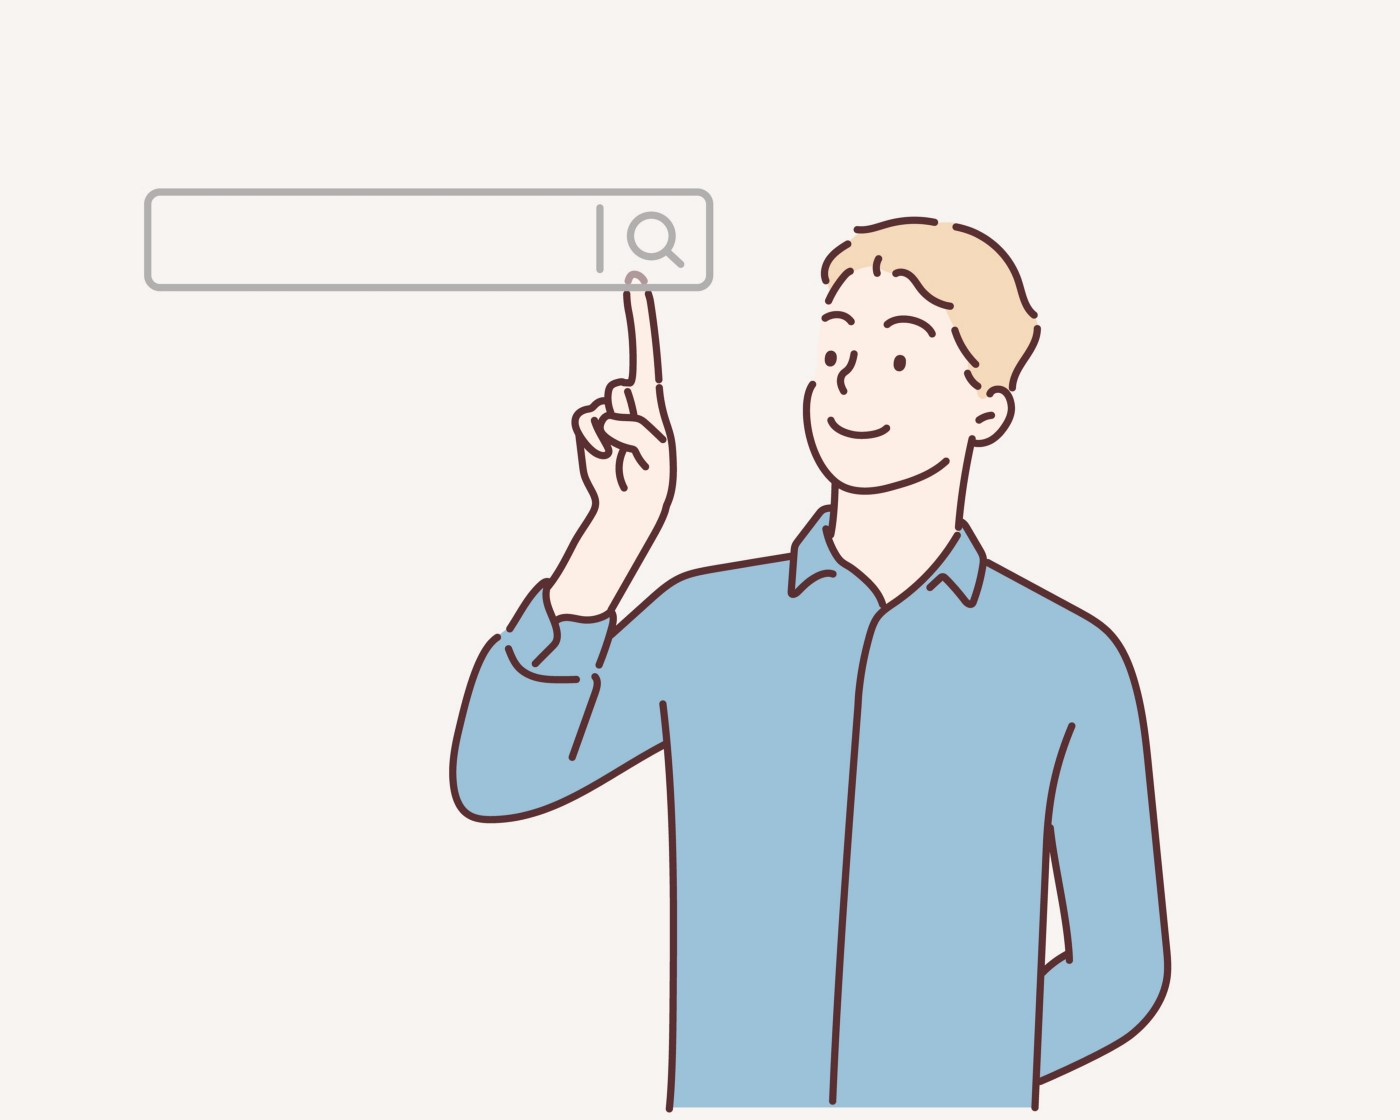 An illustration of a man clicking internet search query box on computer touch screen.